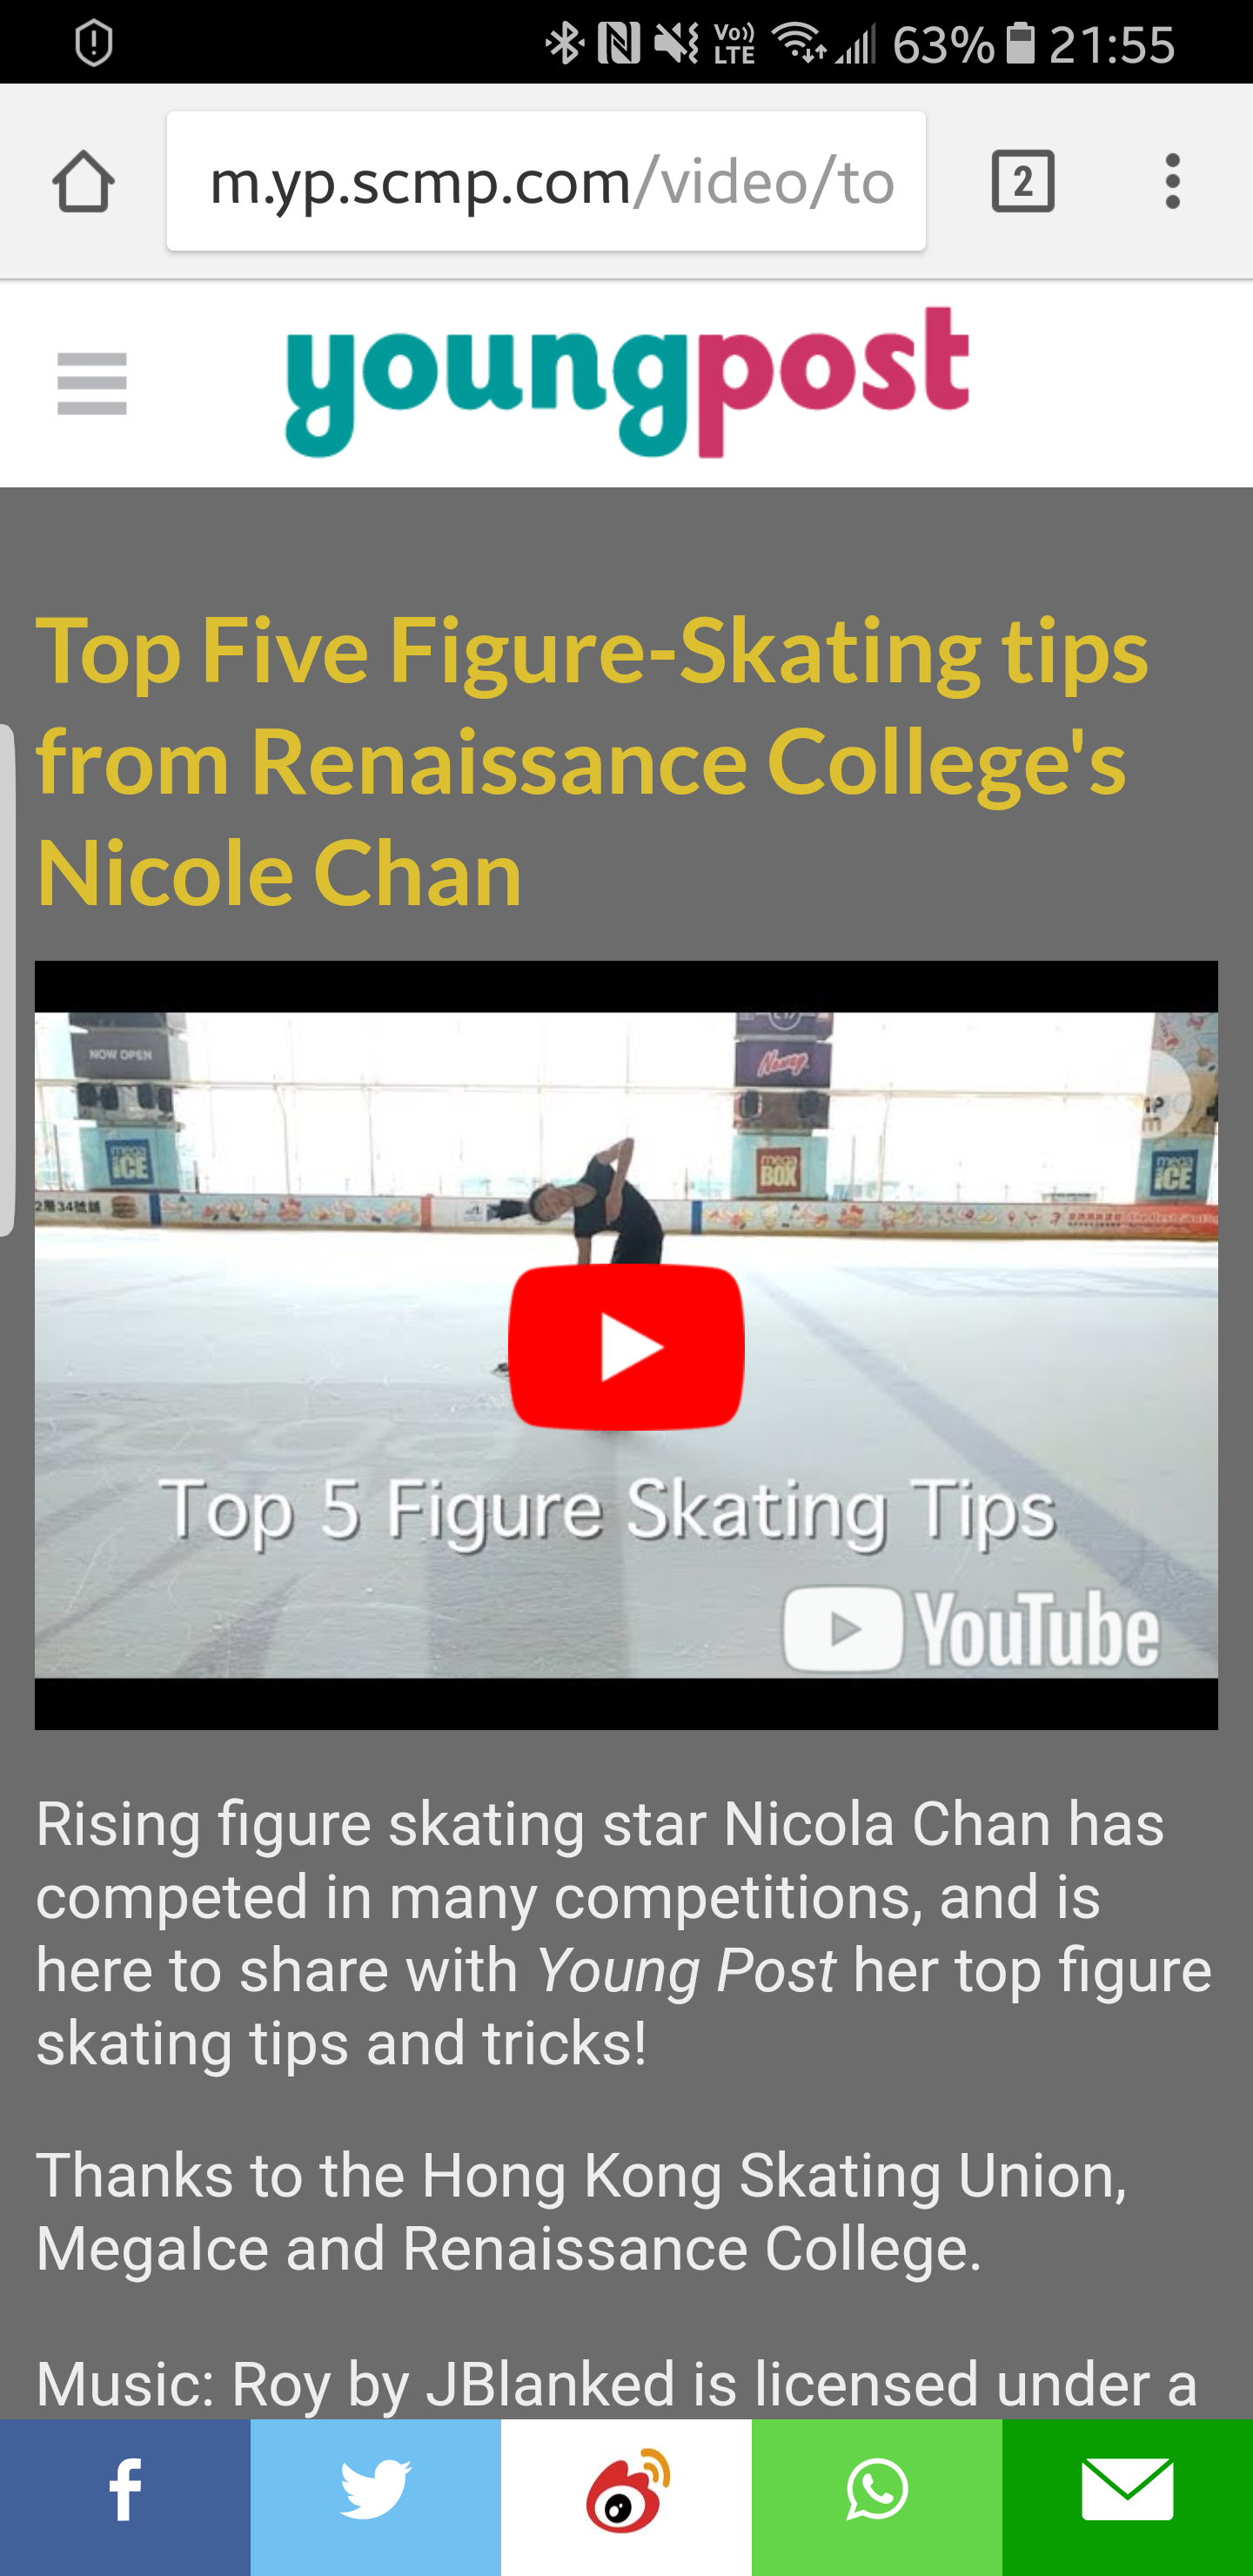 Top 5 Figure Skating Tips